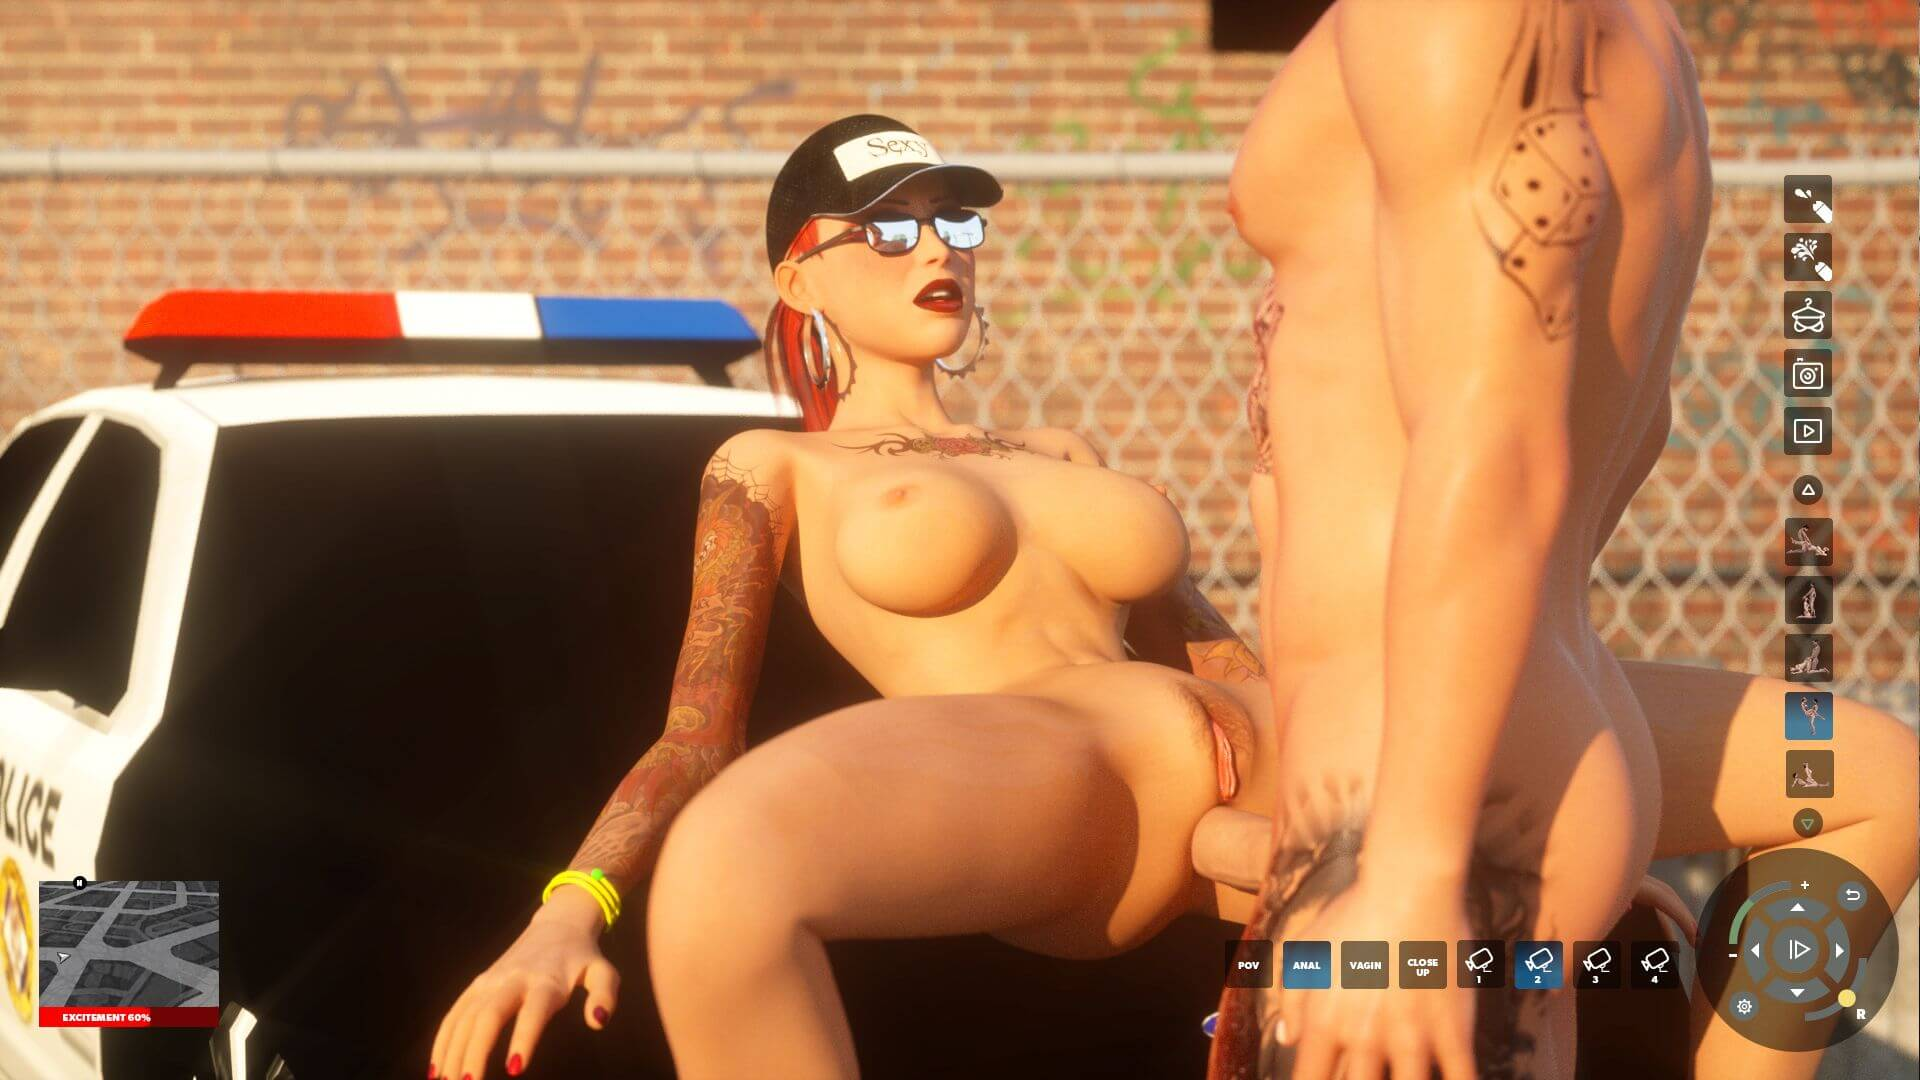 Gta porn big tits exposed scenes